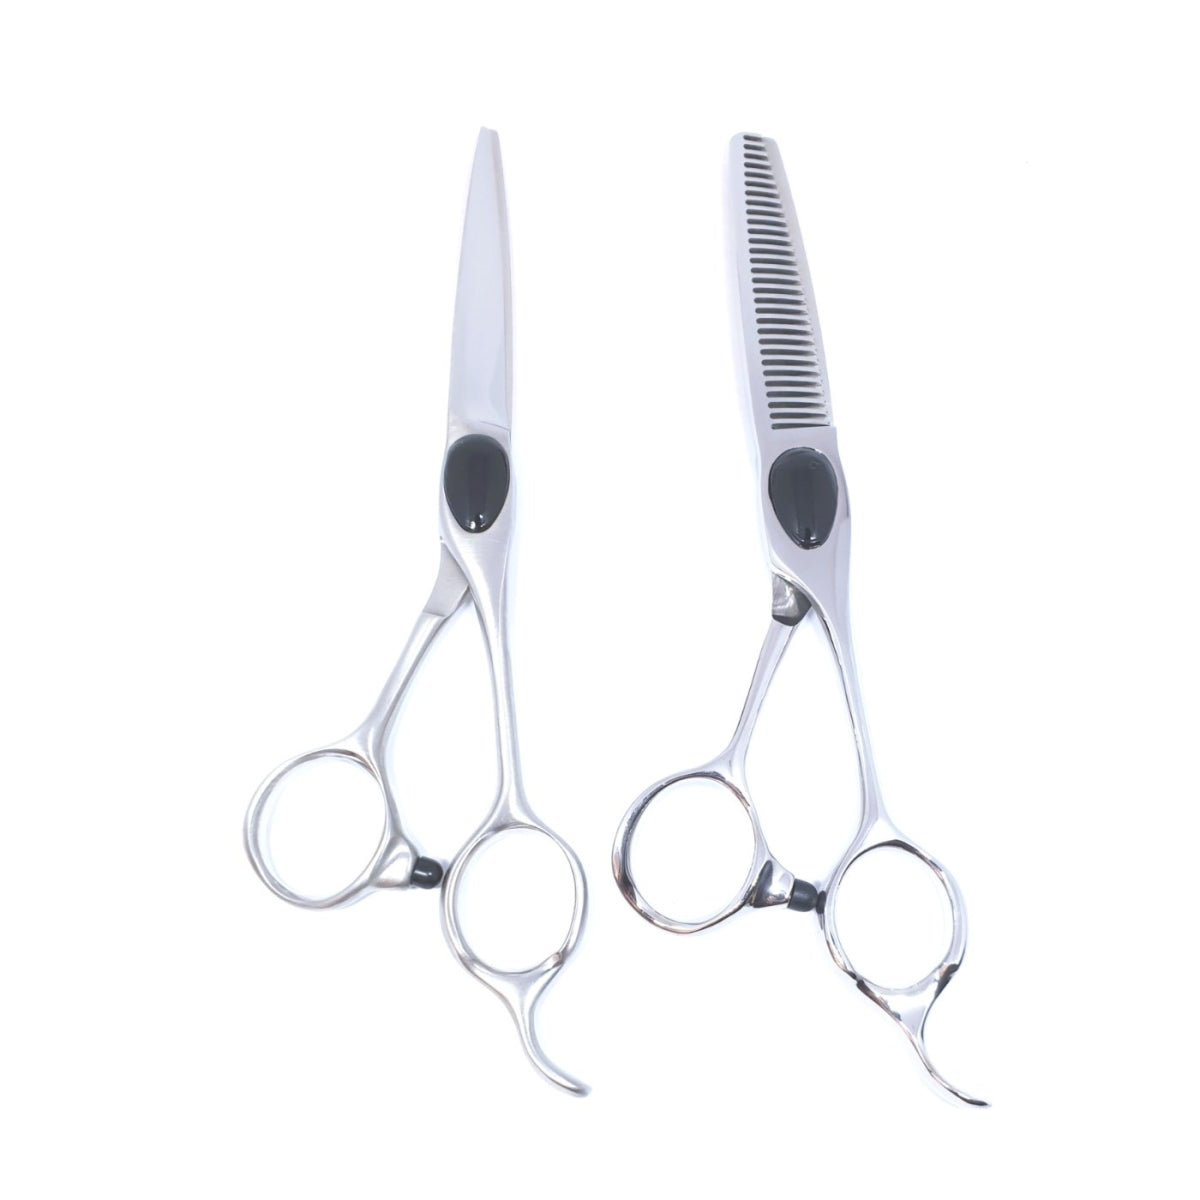 Offset Cutting and Thinning Scissors - Japan Scissors